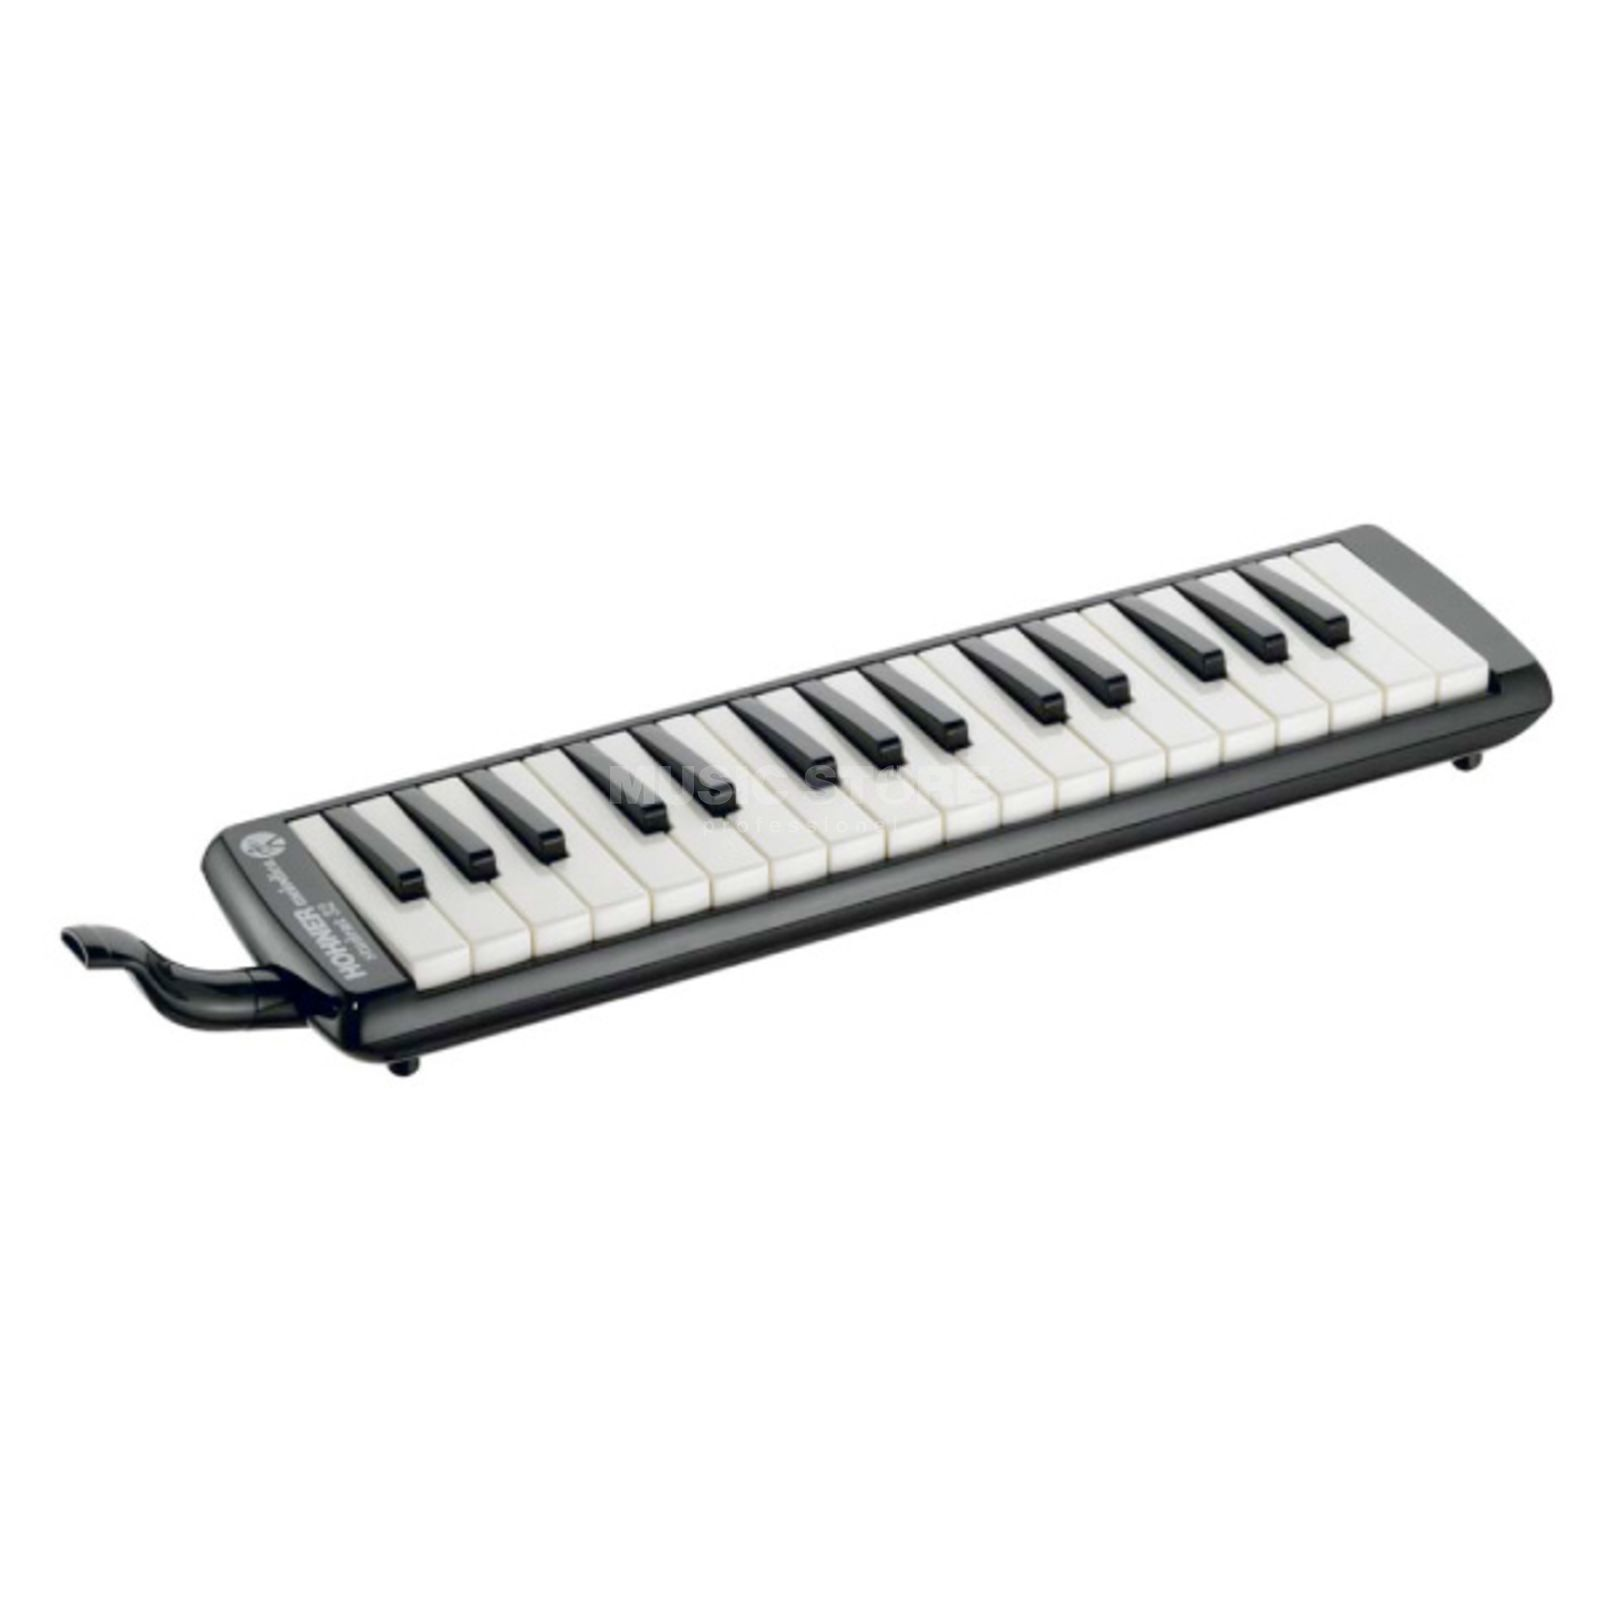 "Hohner ""Student 32"" Melodica Black Incl. Case and Accessories Produktbillede"